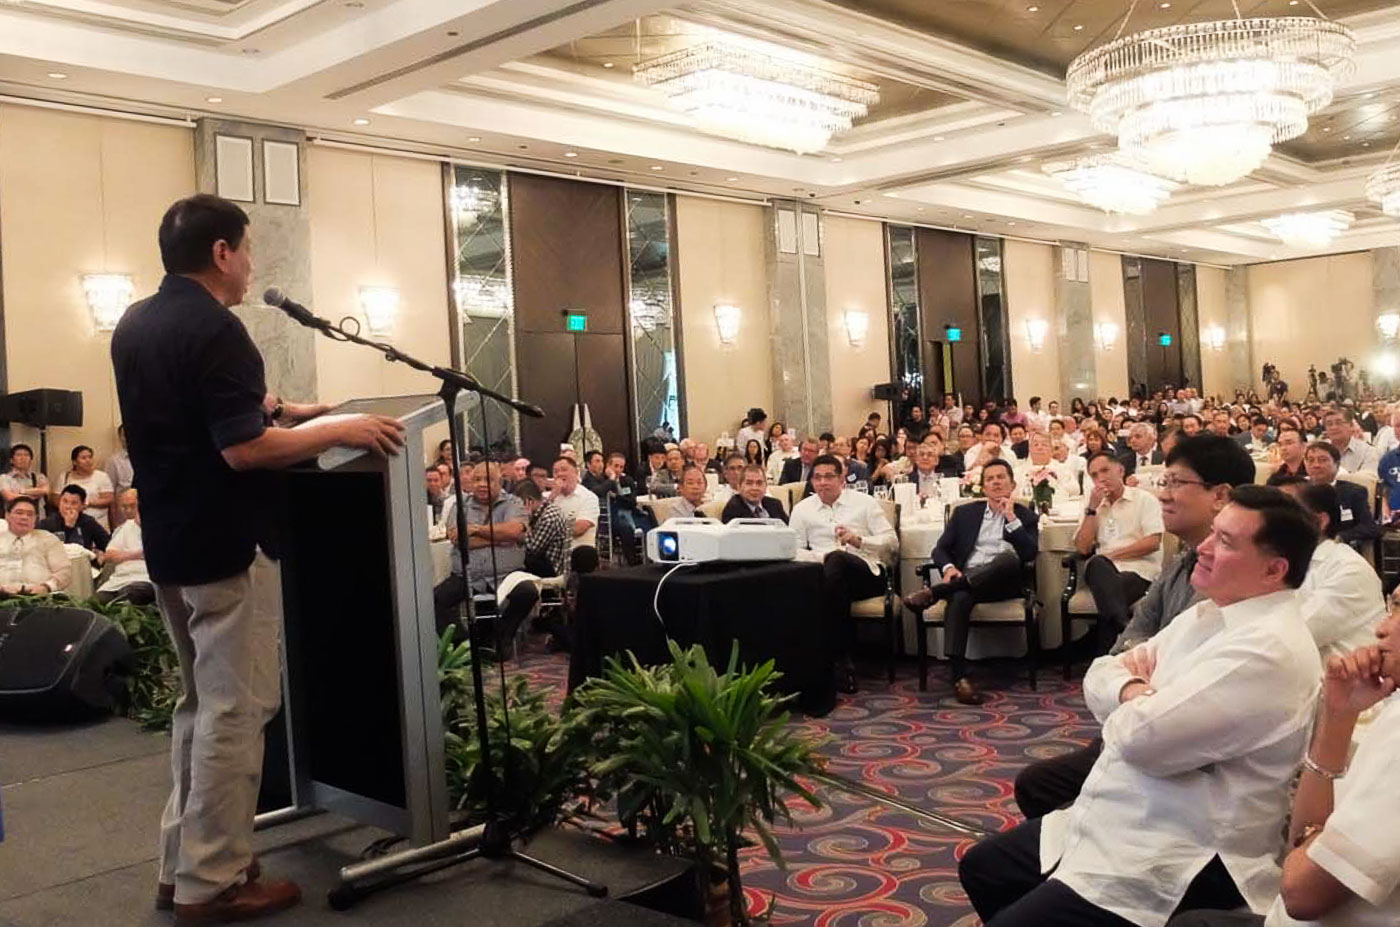 WITH BUSINESS LEADERS. Presidential candidate and Davao City Mayor Rodrigo Duterte speaking to businessmen in a forum at a hotel in Makati City on April 27. Photo by Alecs Ongcal/Rappler